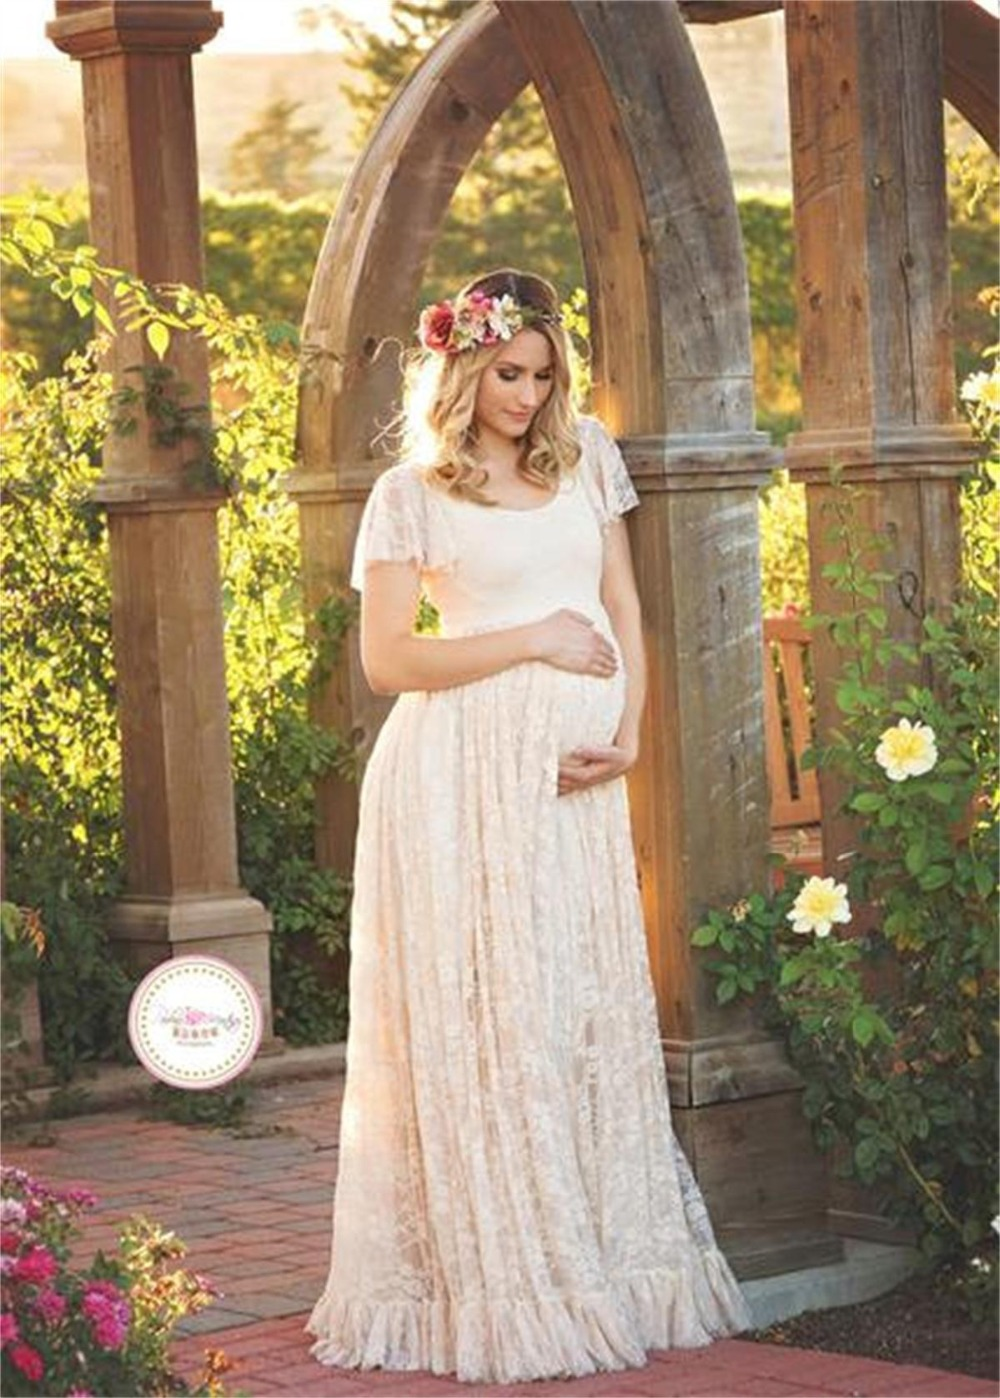 Online get cheap white beach maternity dress aliexpress maternity dress for photo shooting round neck white dress maternty photography props short sleeve lace pregnant ombrellifo Image collections